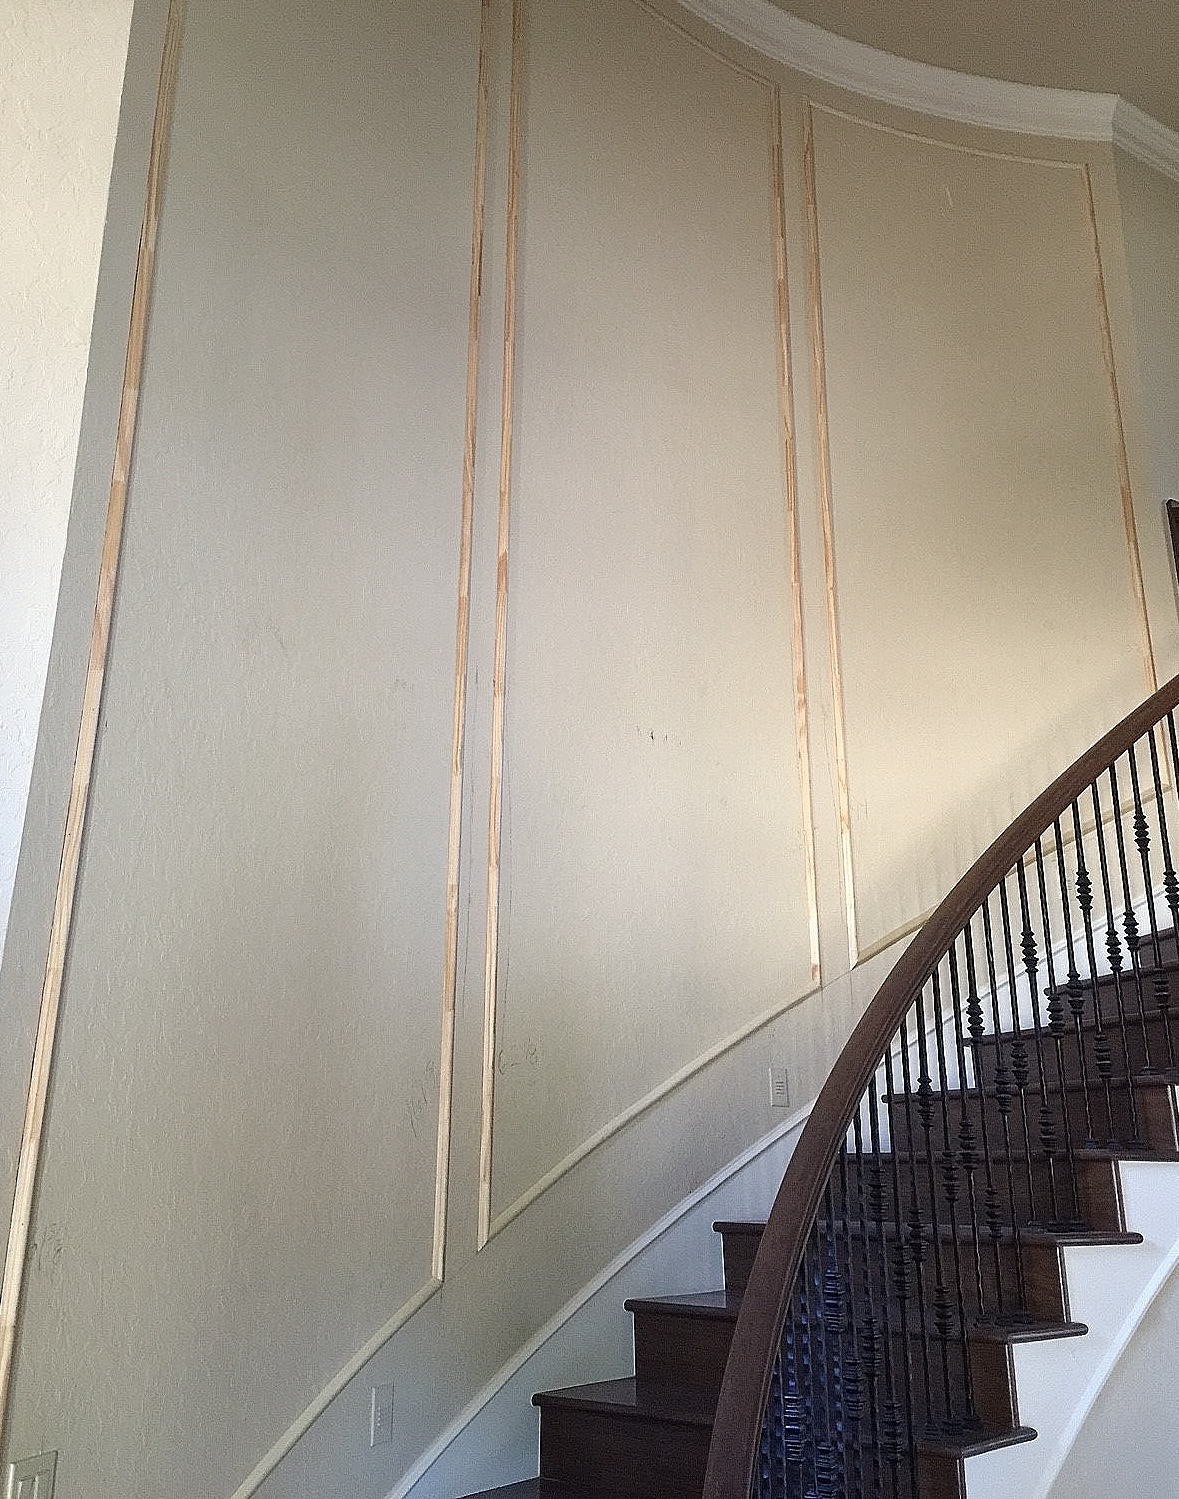 IN PROGRESS - Here we added some mouldings to a grand staircase wall that looked more than a little plain and drab. Carla Aston, Designer